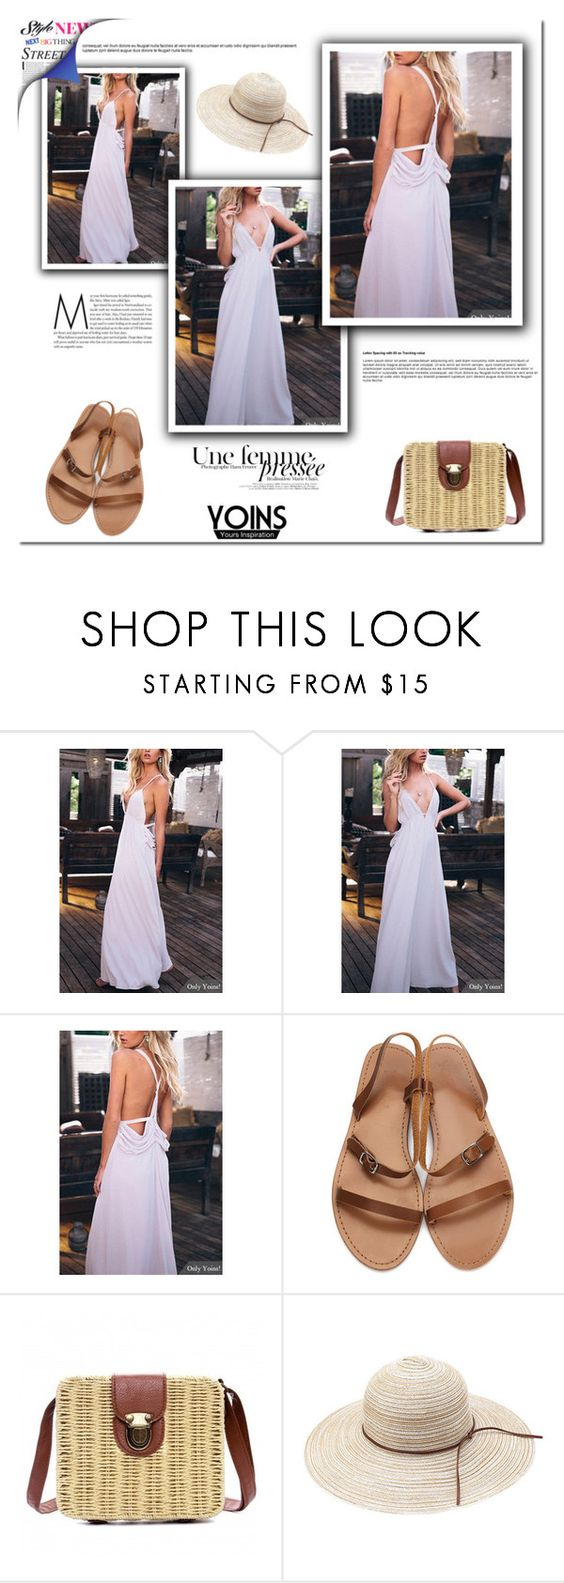 """""""Yoins - white dress."""" by tatajrj ❤ liked on Polyvore featuring yoins"""